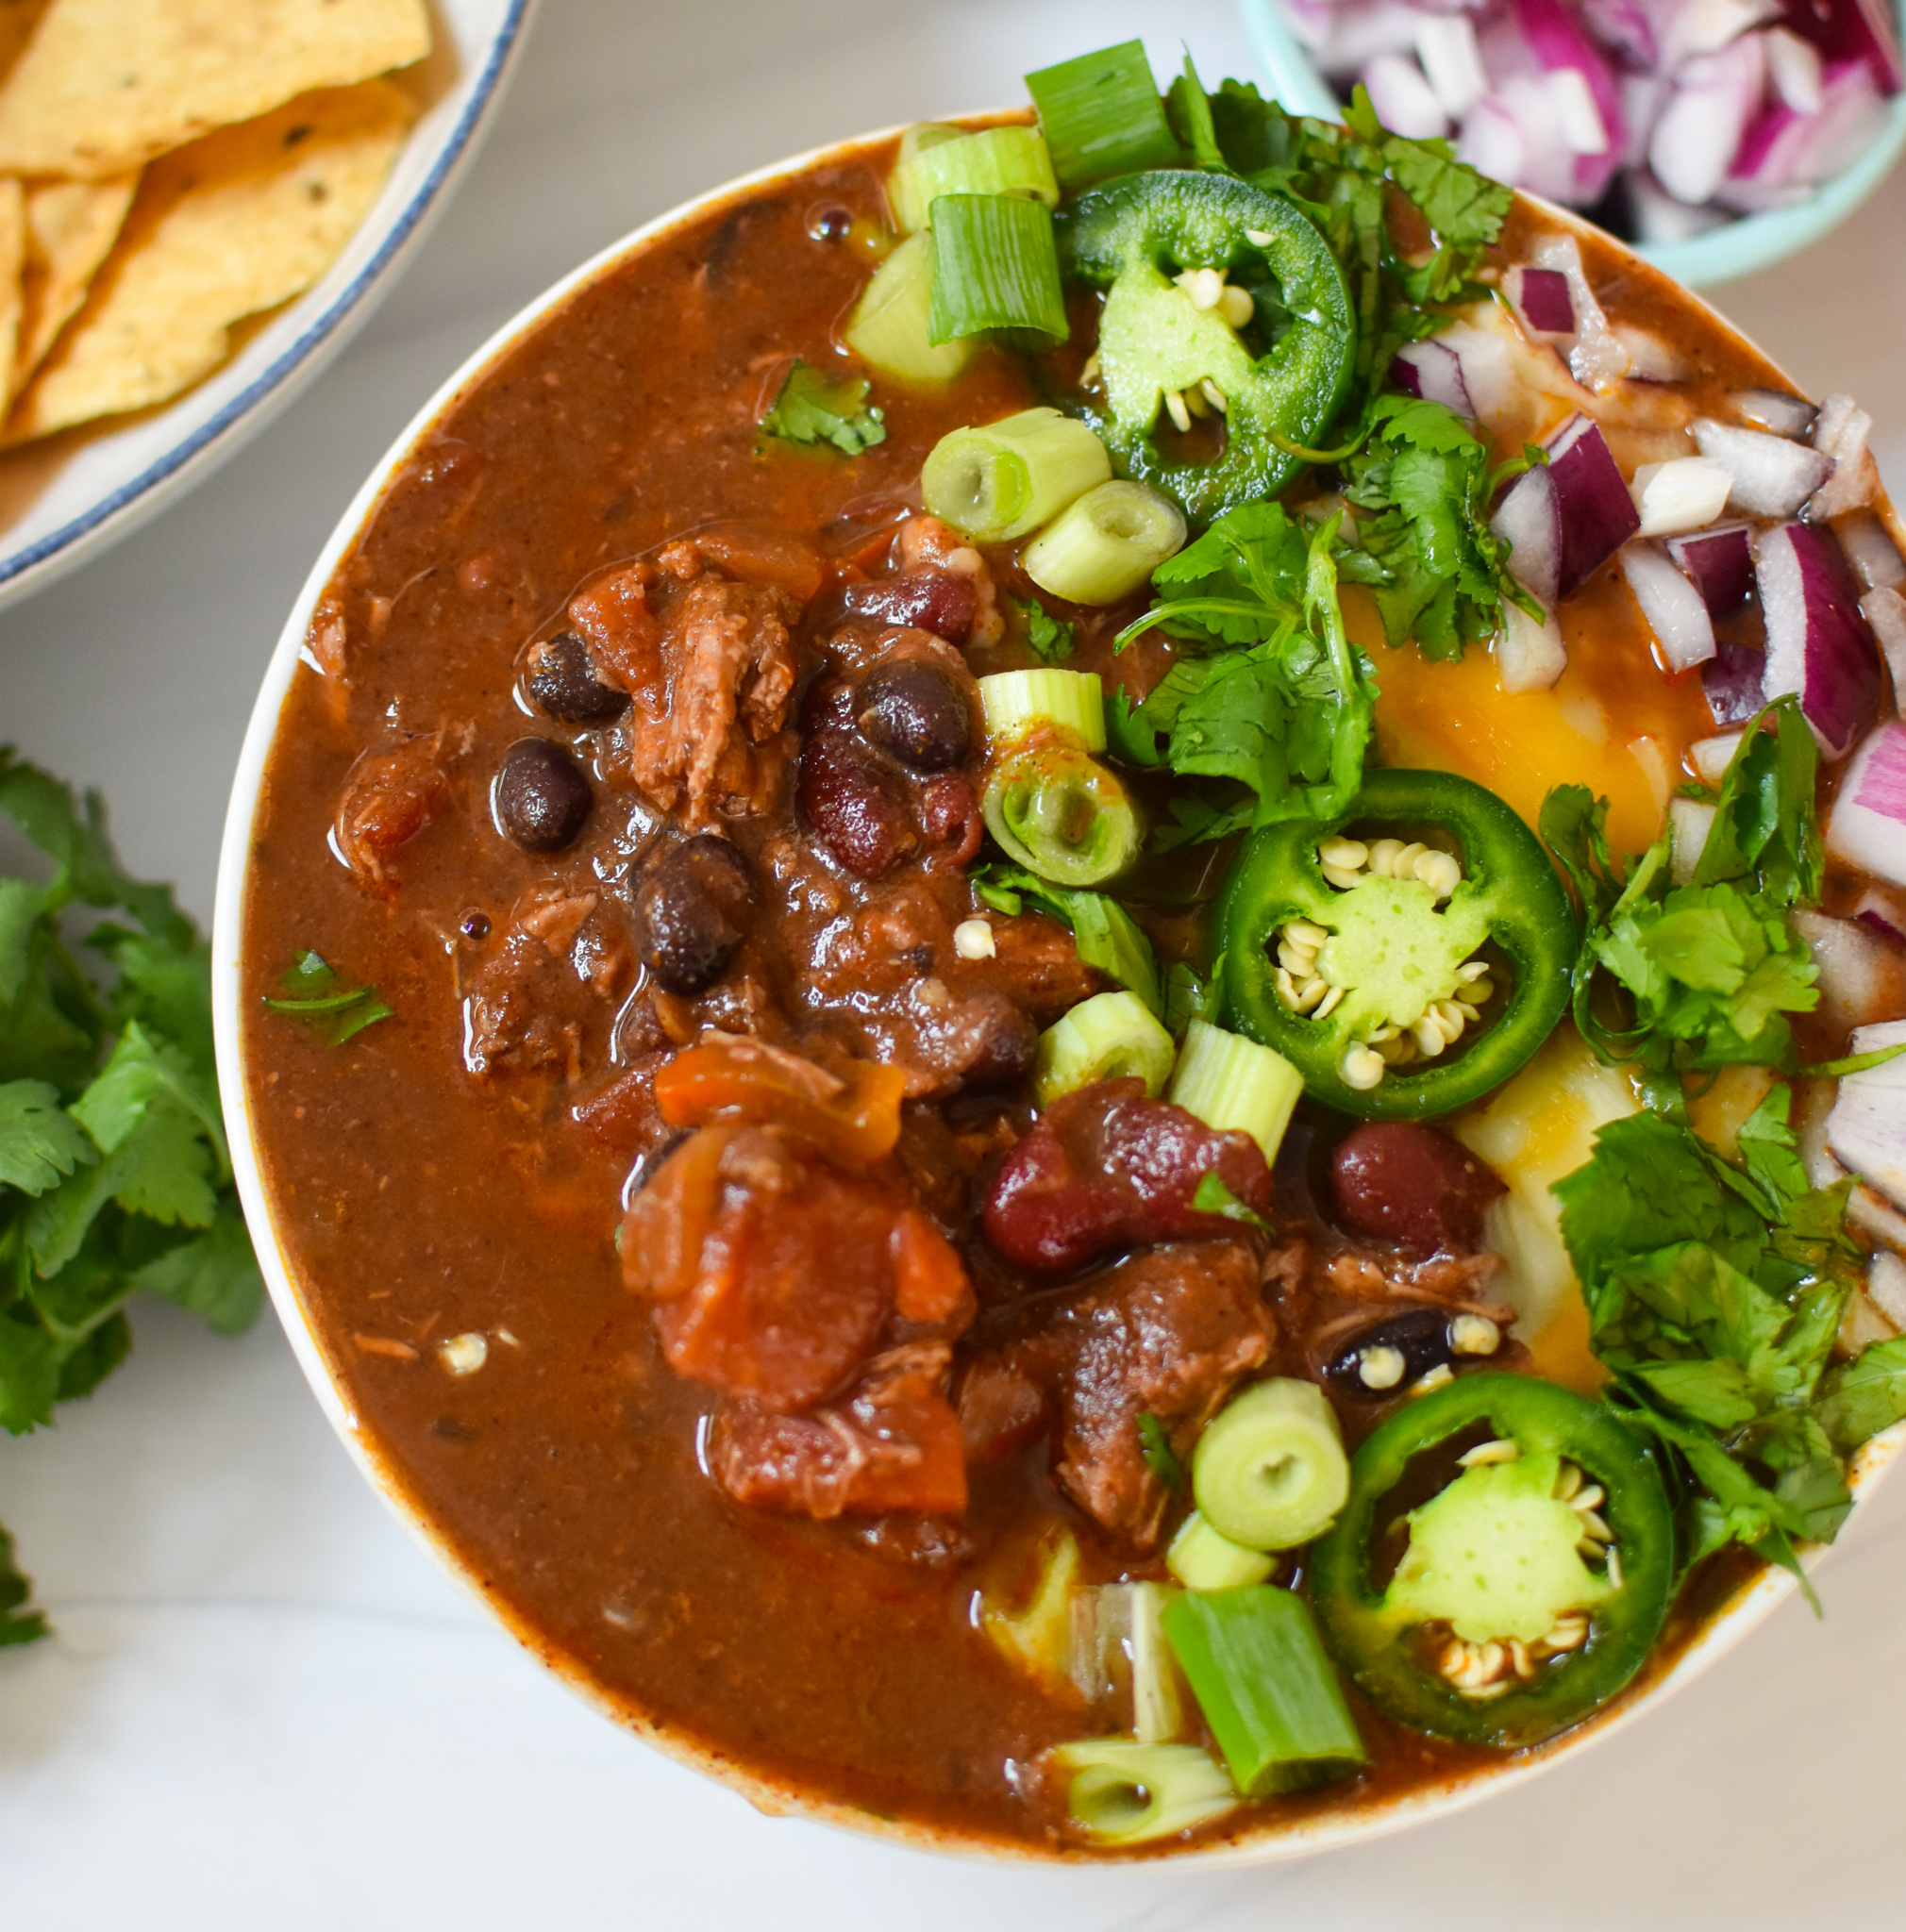 Chili Con Carne with red onion.